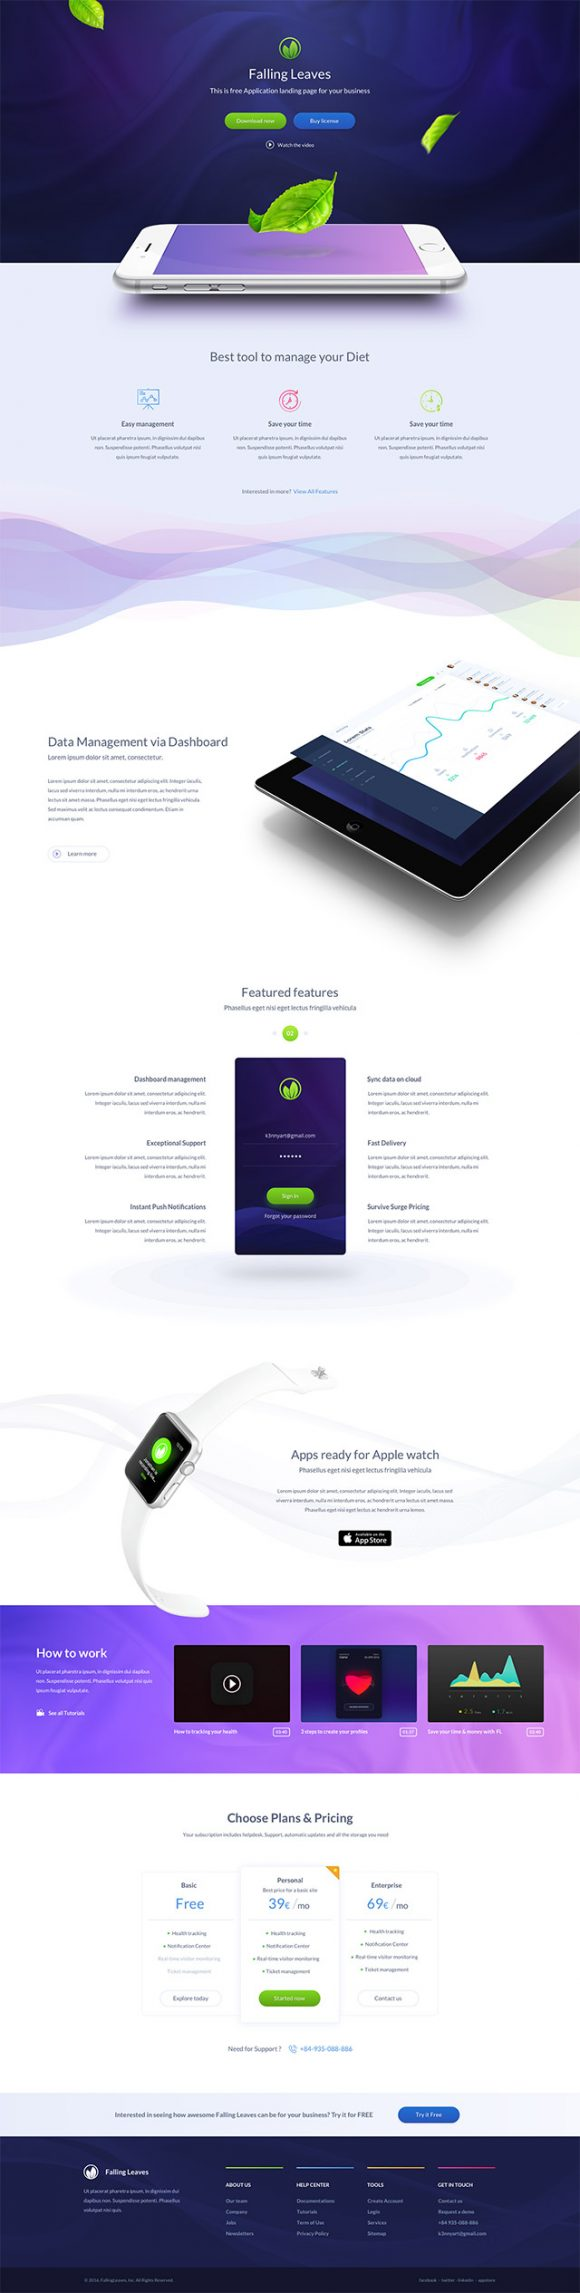 One Page landing template for mobile apps - Full preview